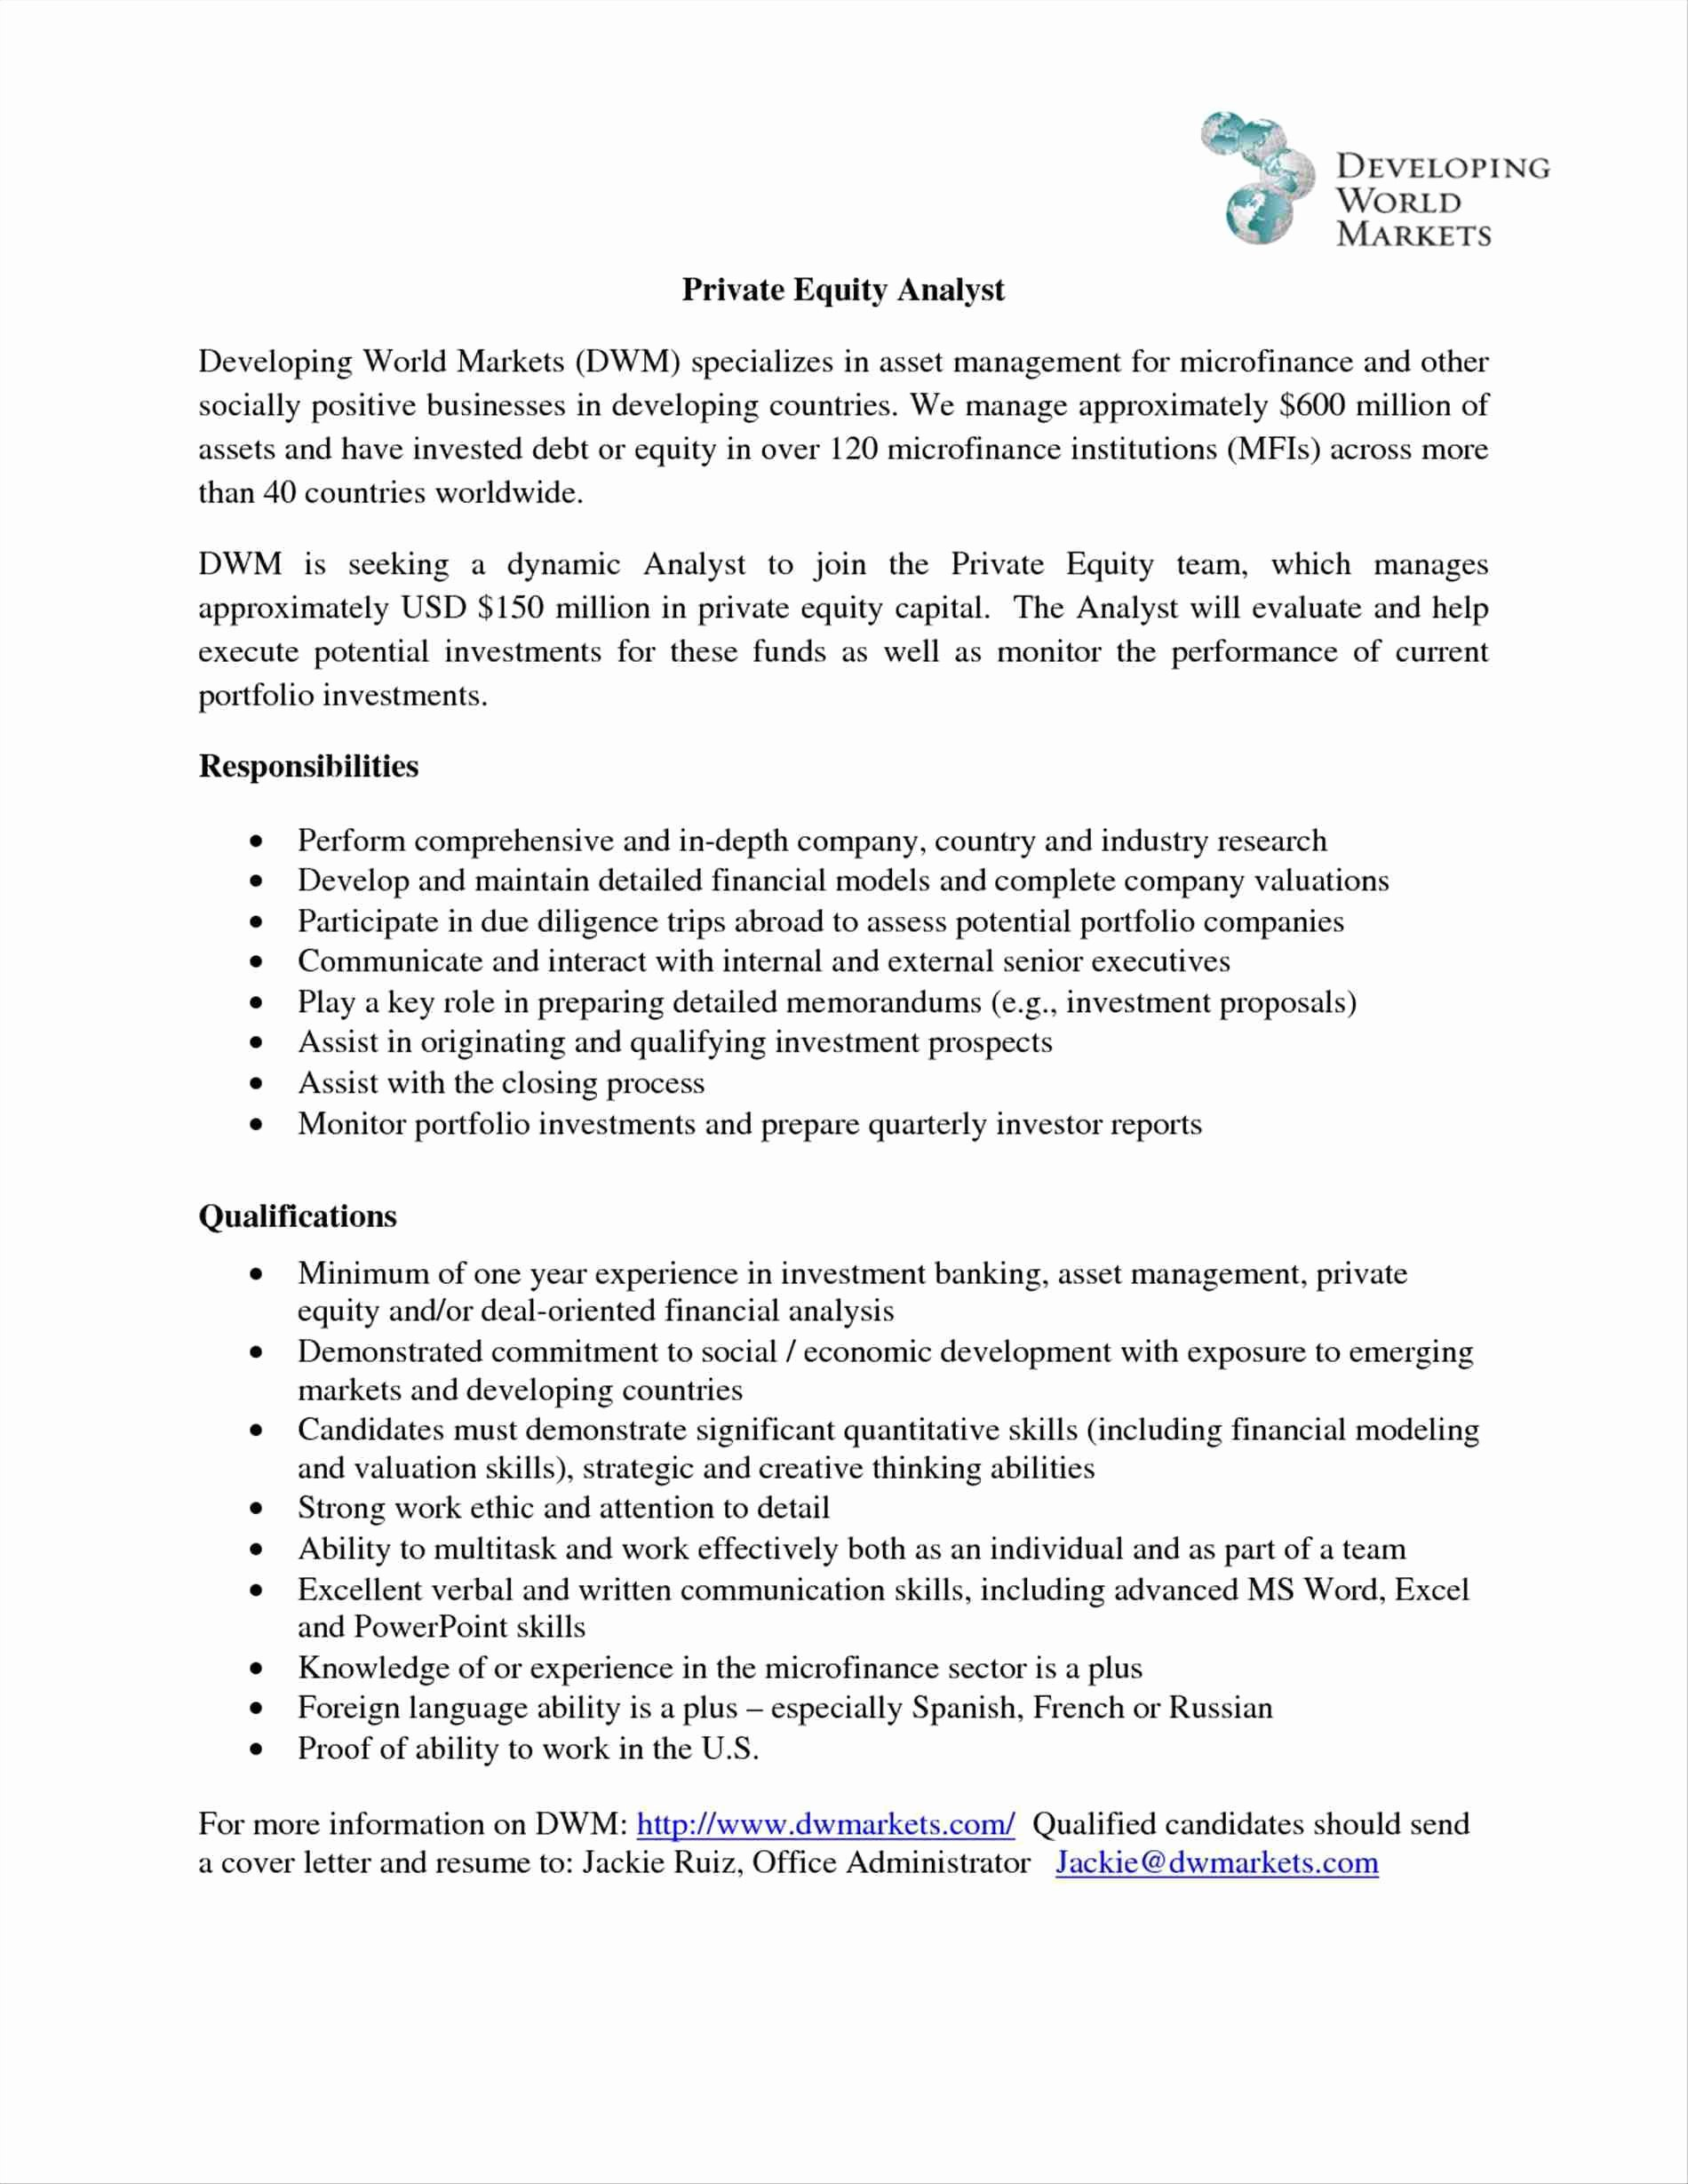 Ideas Collection Cover Letter for Private Equity Role